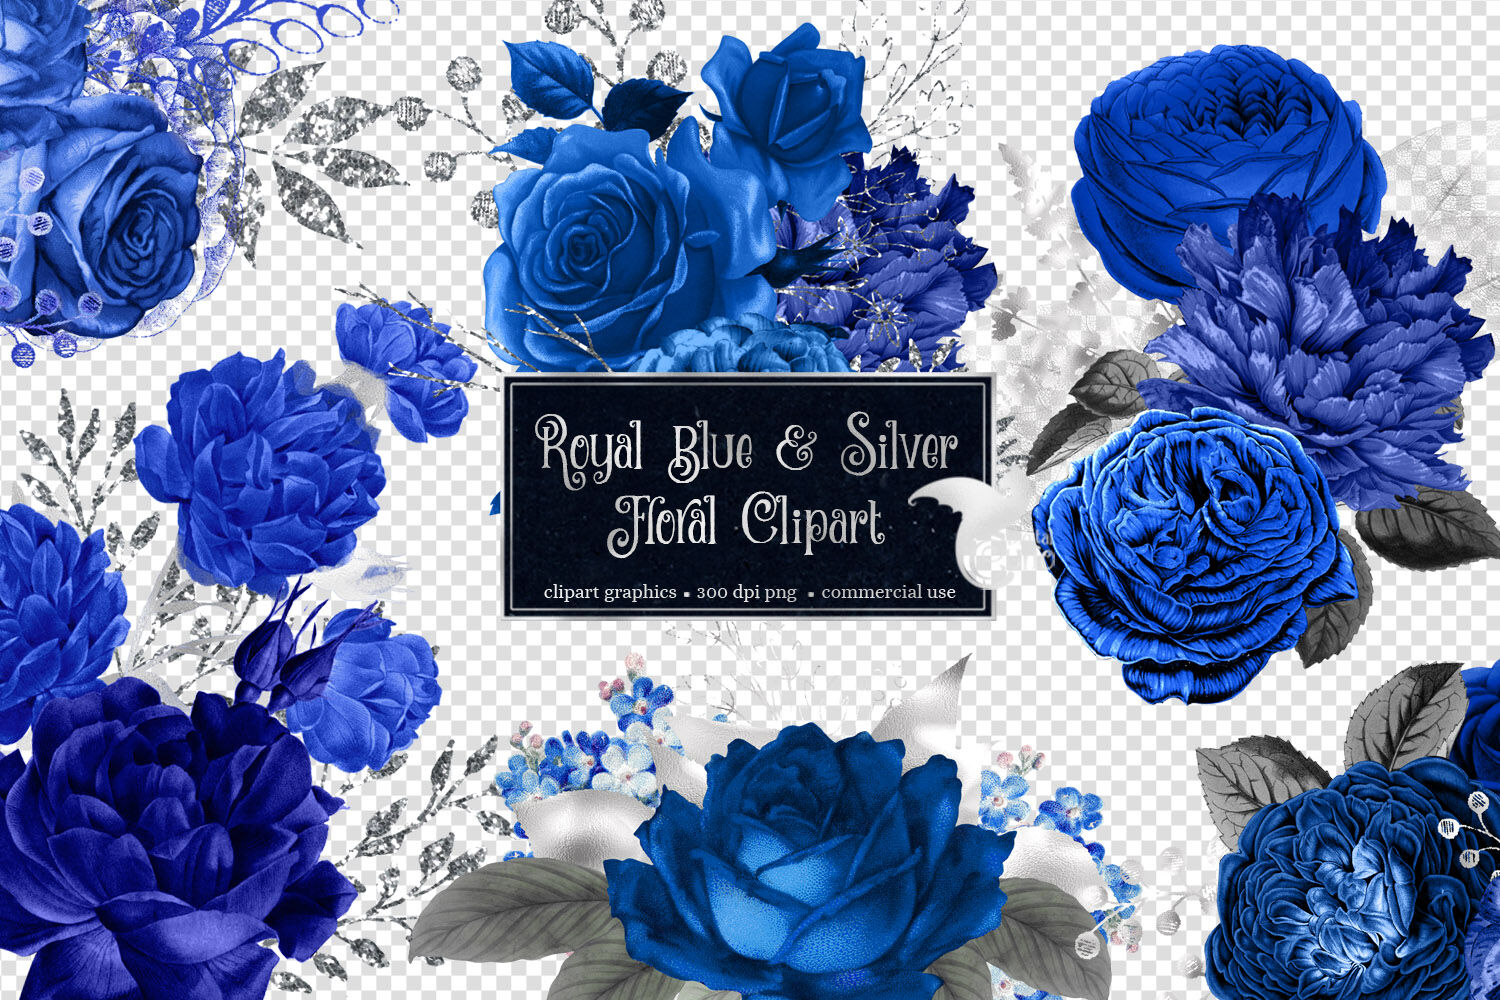 Royal blue and silver floral clipart by digital curio - Background image of div ...